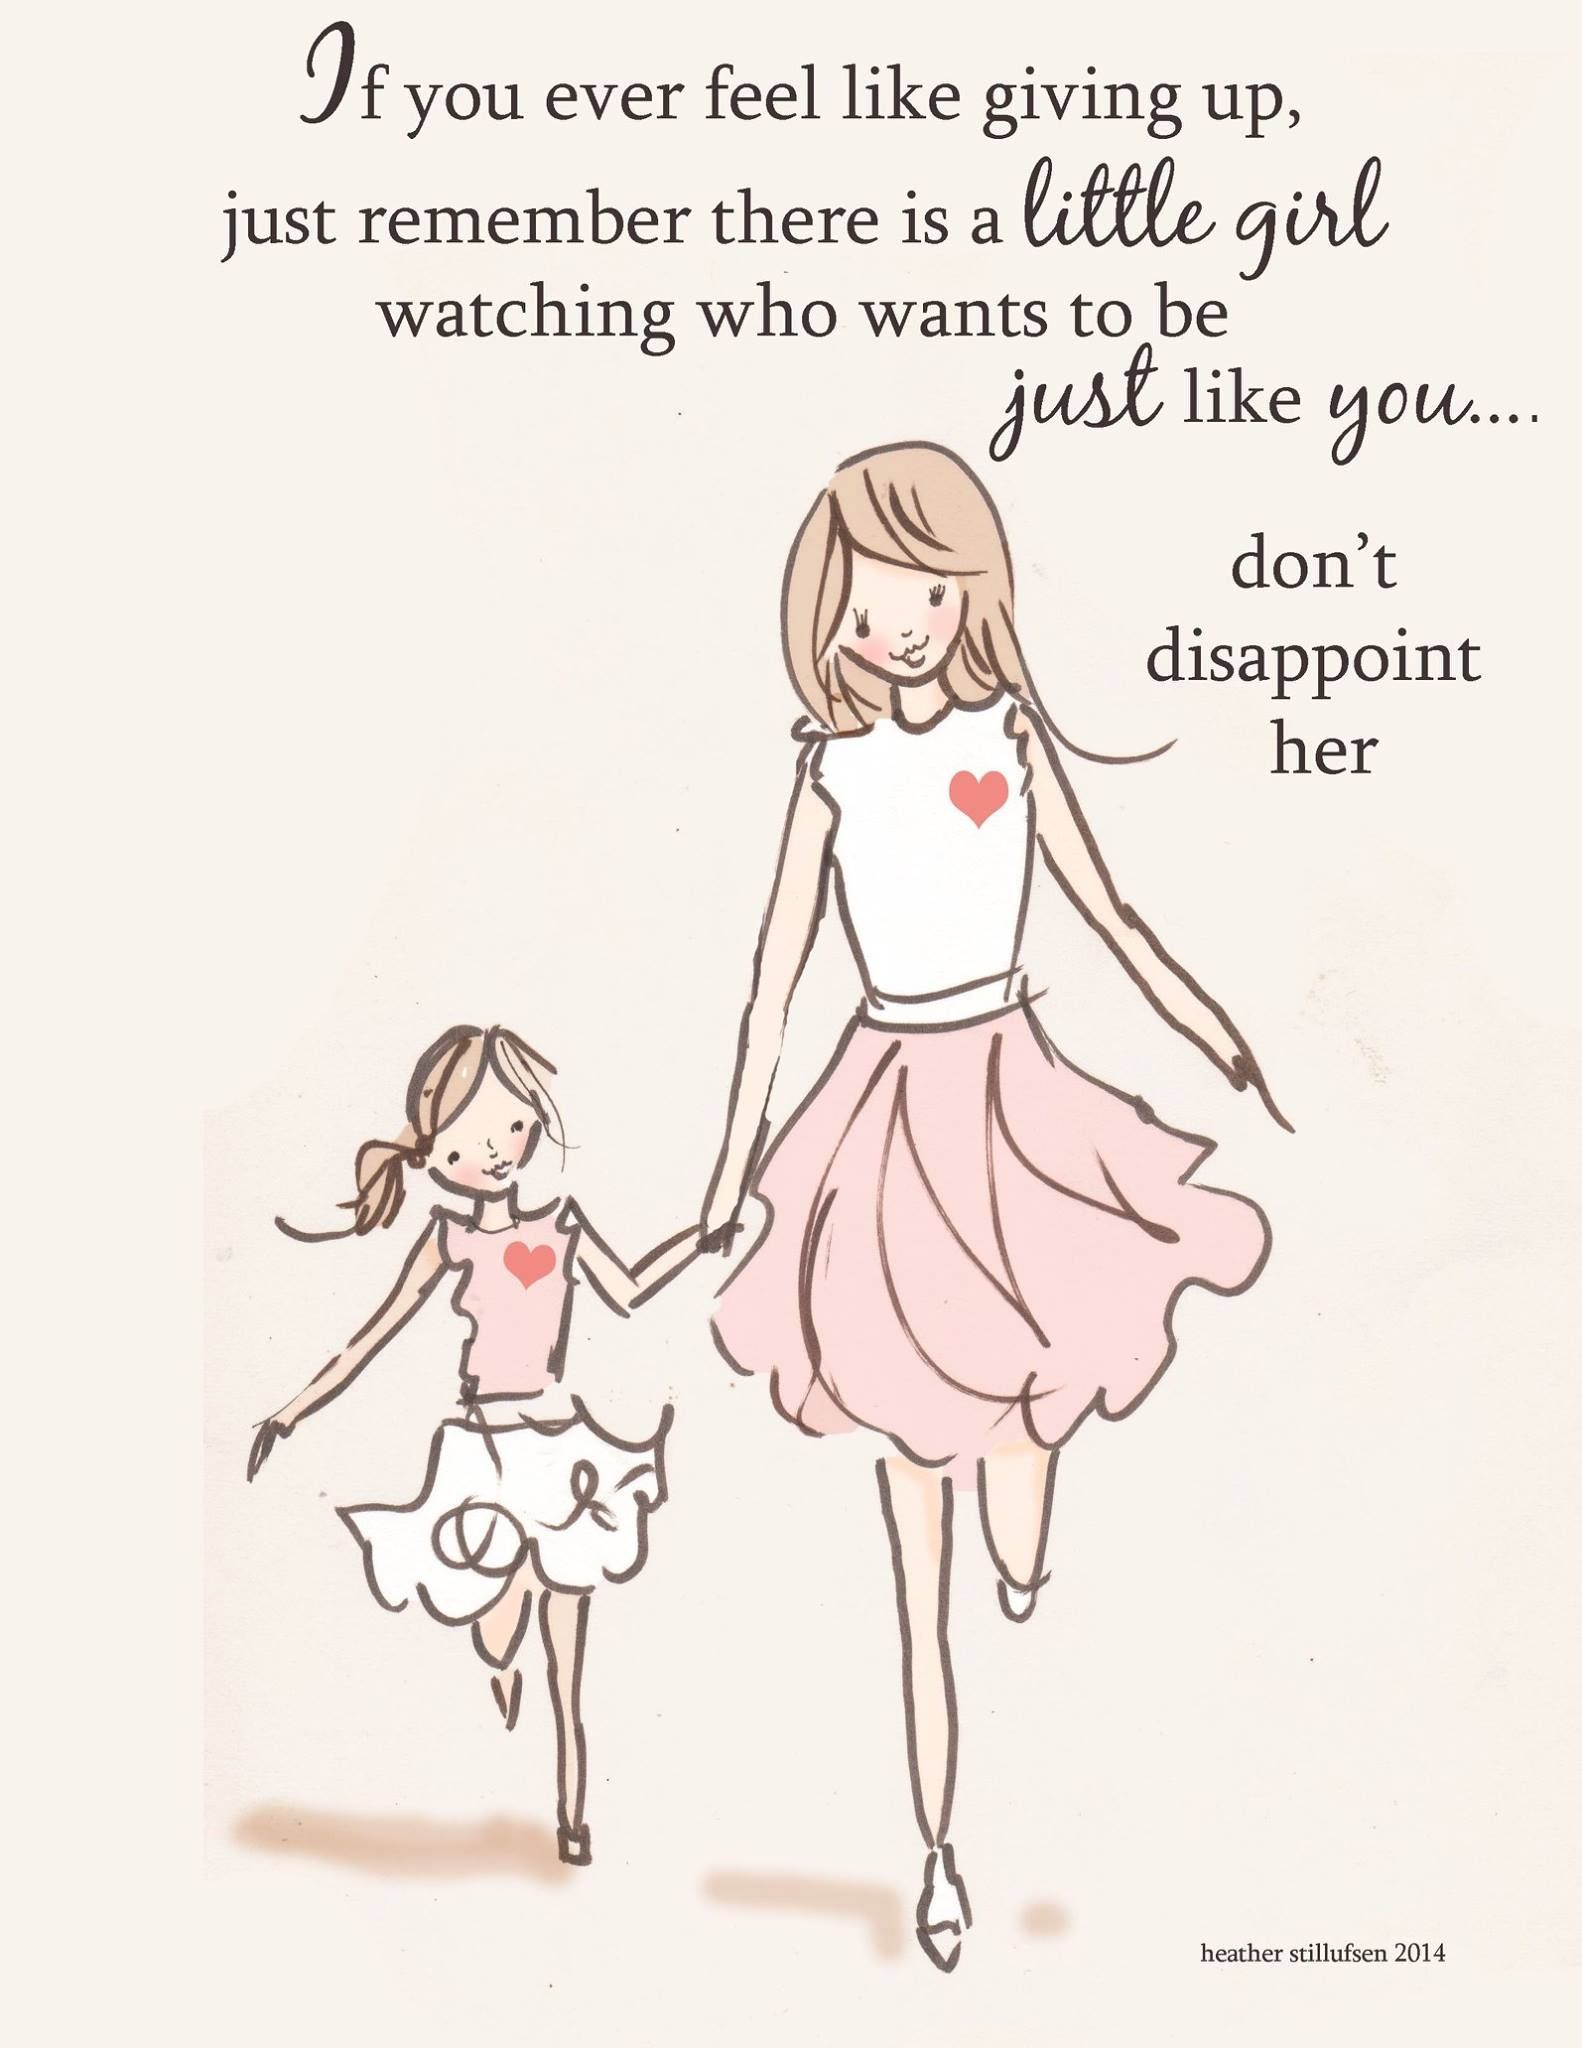 Mom And Daughter Art Art For Moms Inspirational Art For Women Just Like You Daughter Quotes Mother Daughter Quotes Feel Like Giving Up